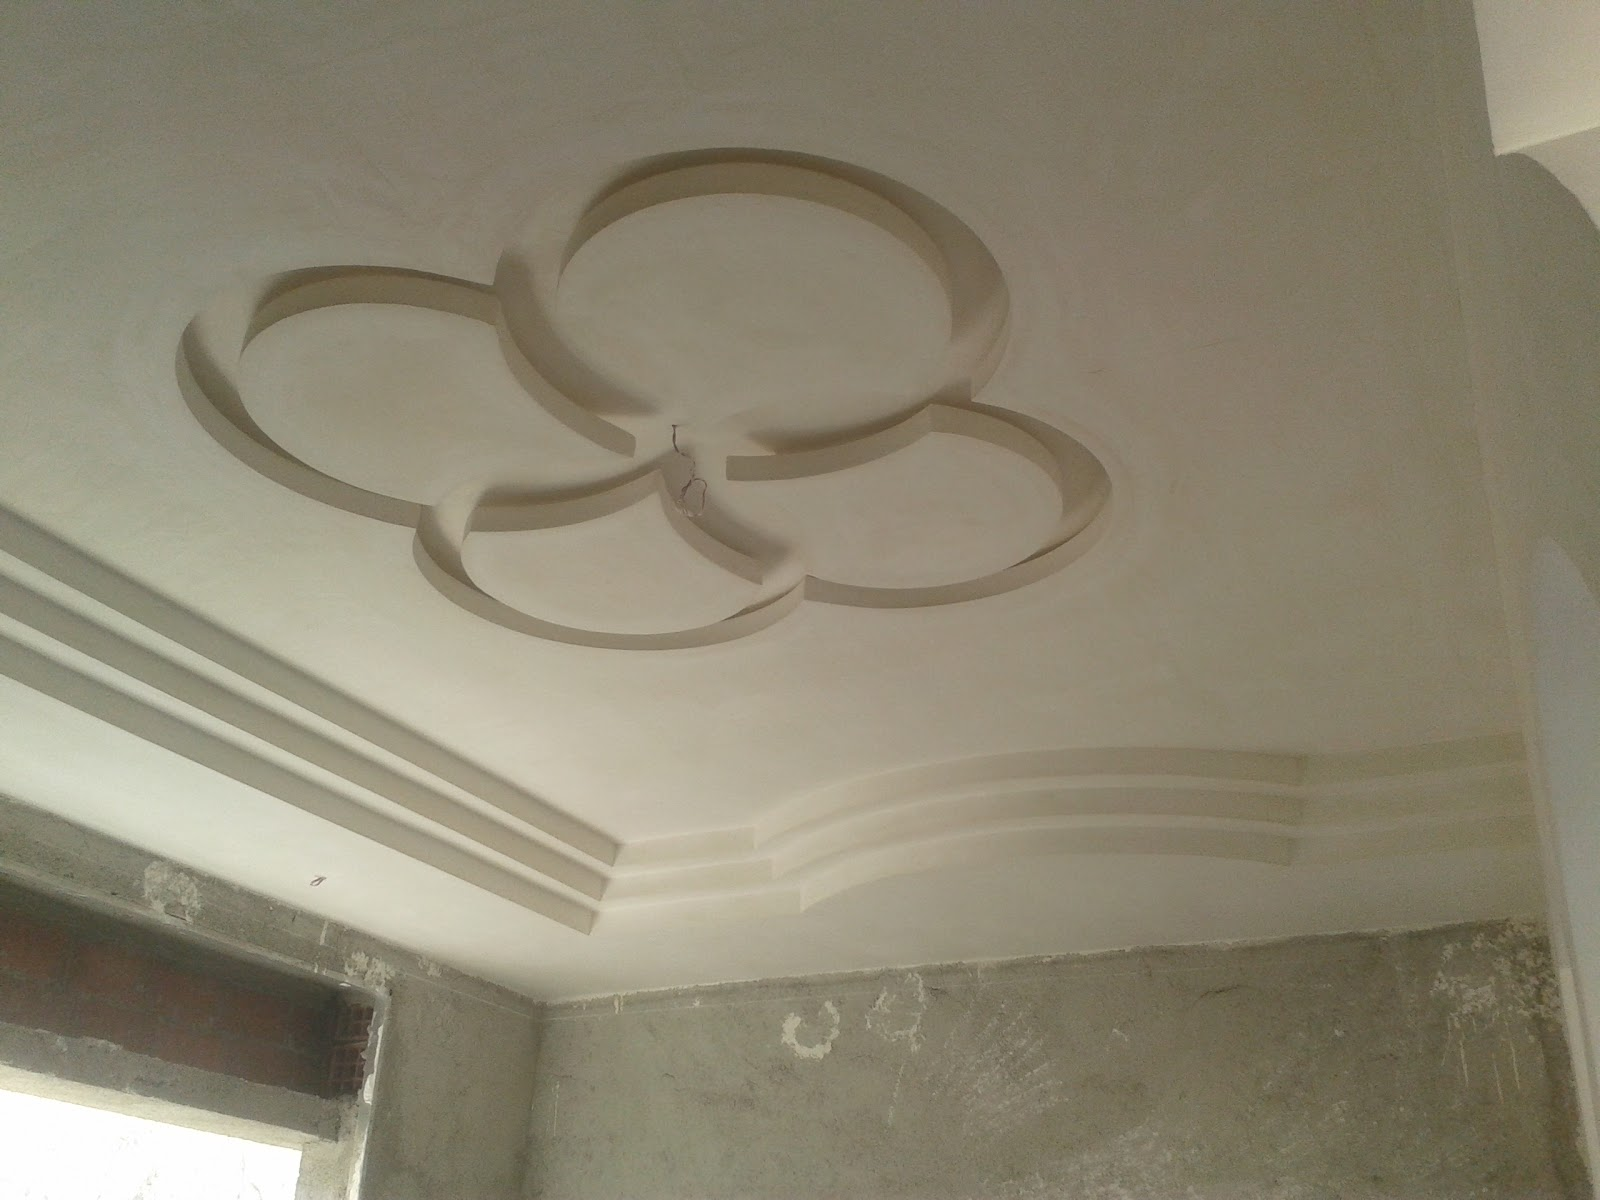 Faux plafond en pl tre pour une salon de meknes platre for Faux plafond platre simple